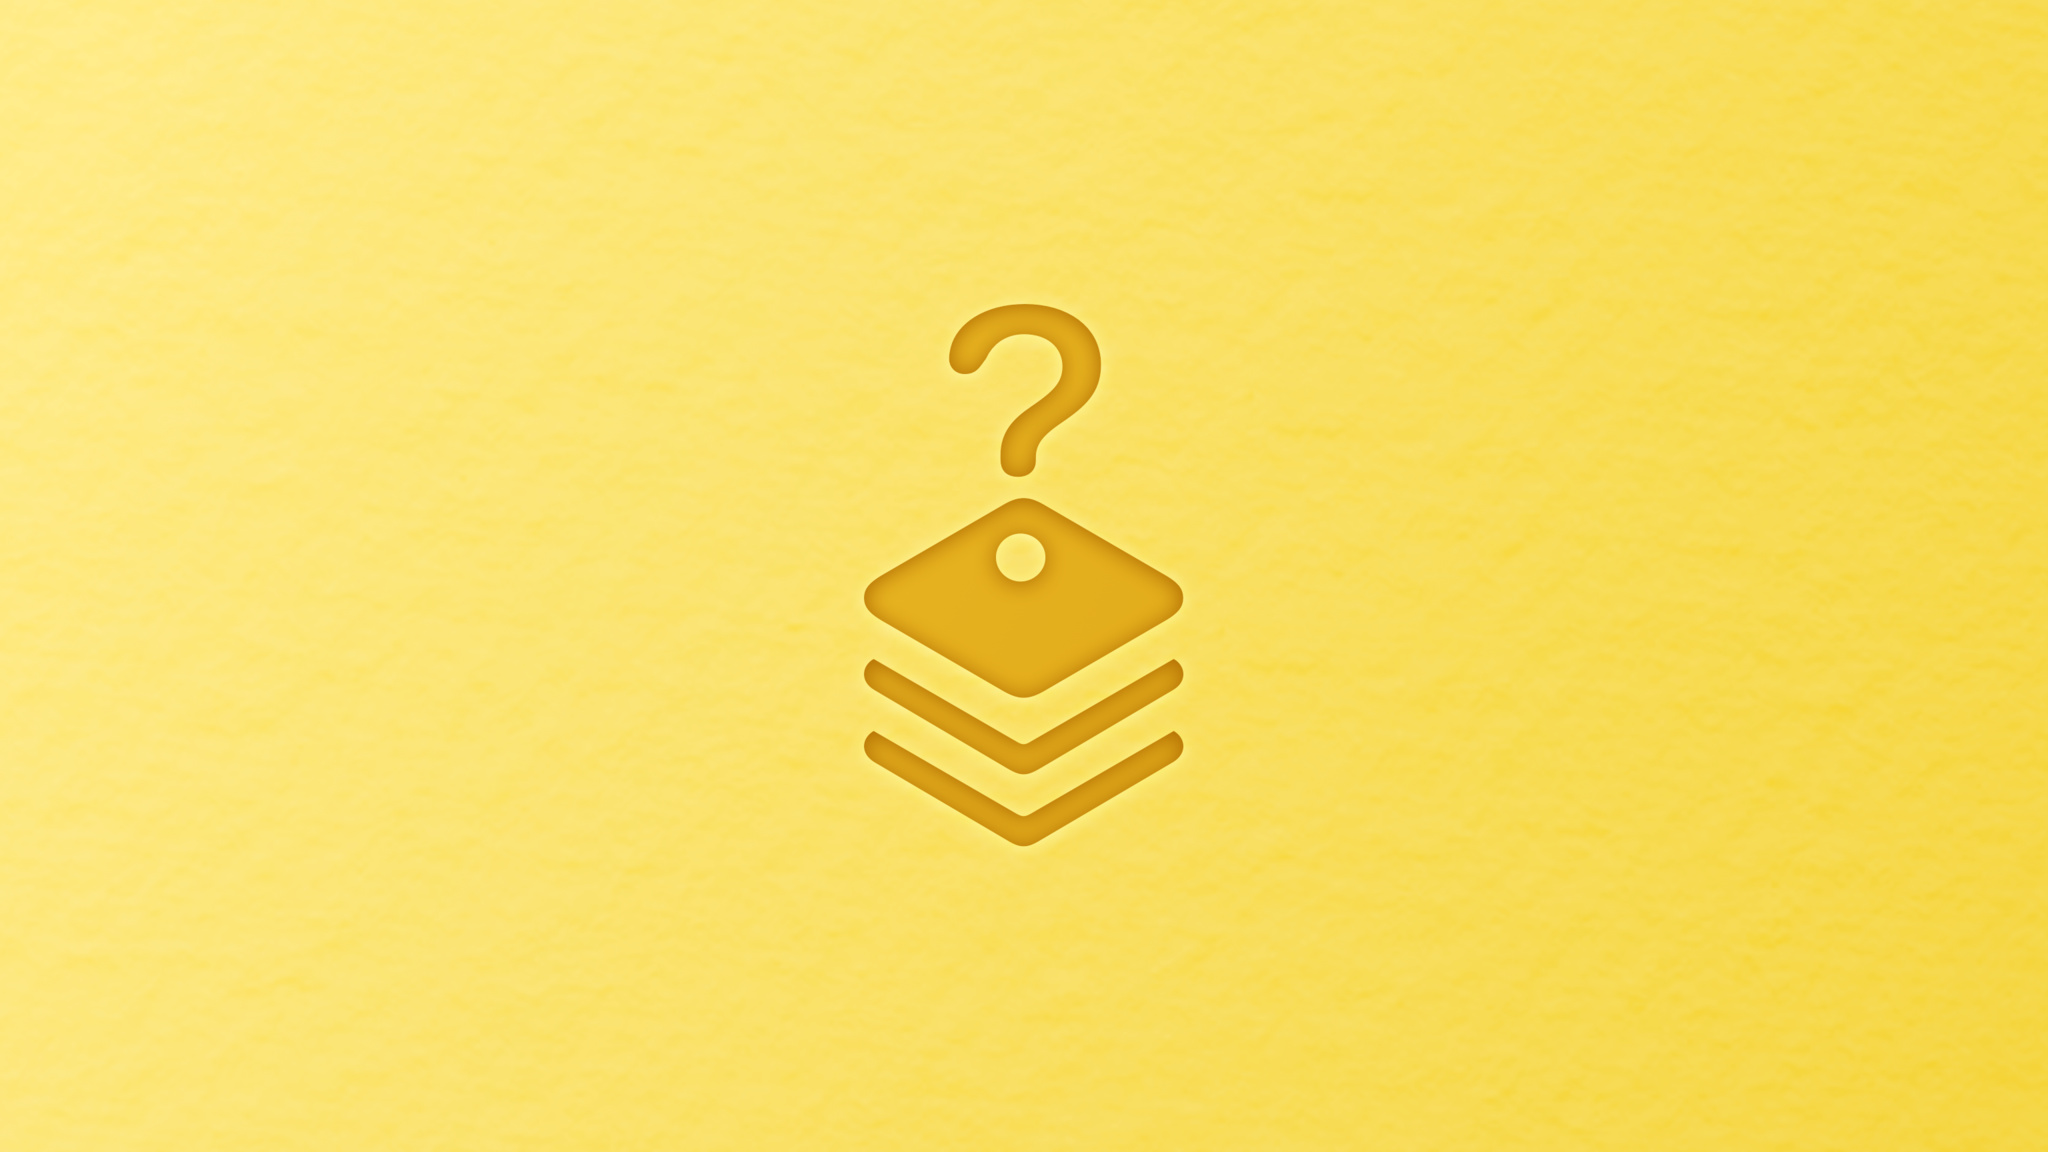 Framework icon with a question mark on top of it on a yellow background